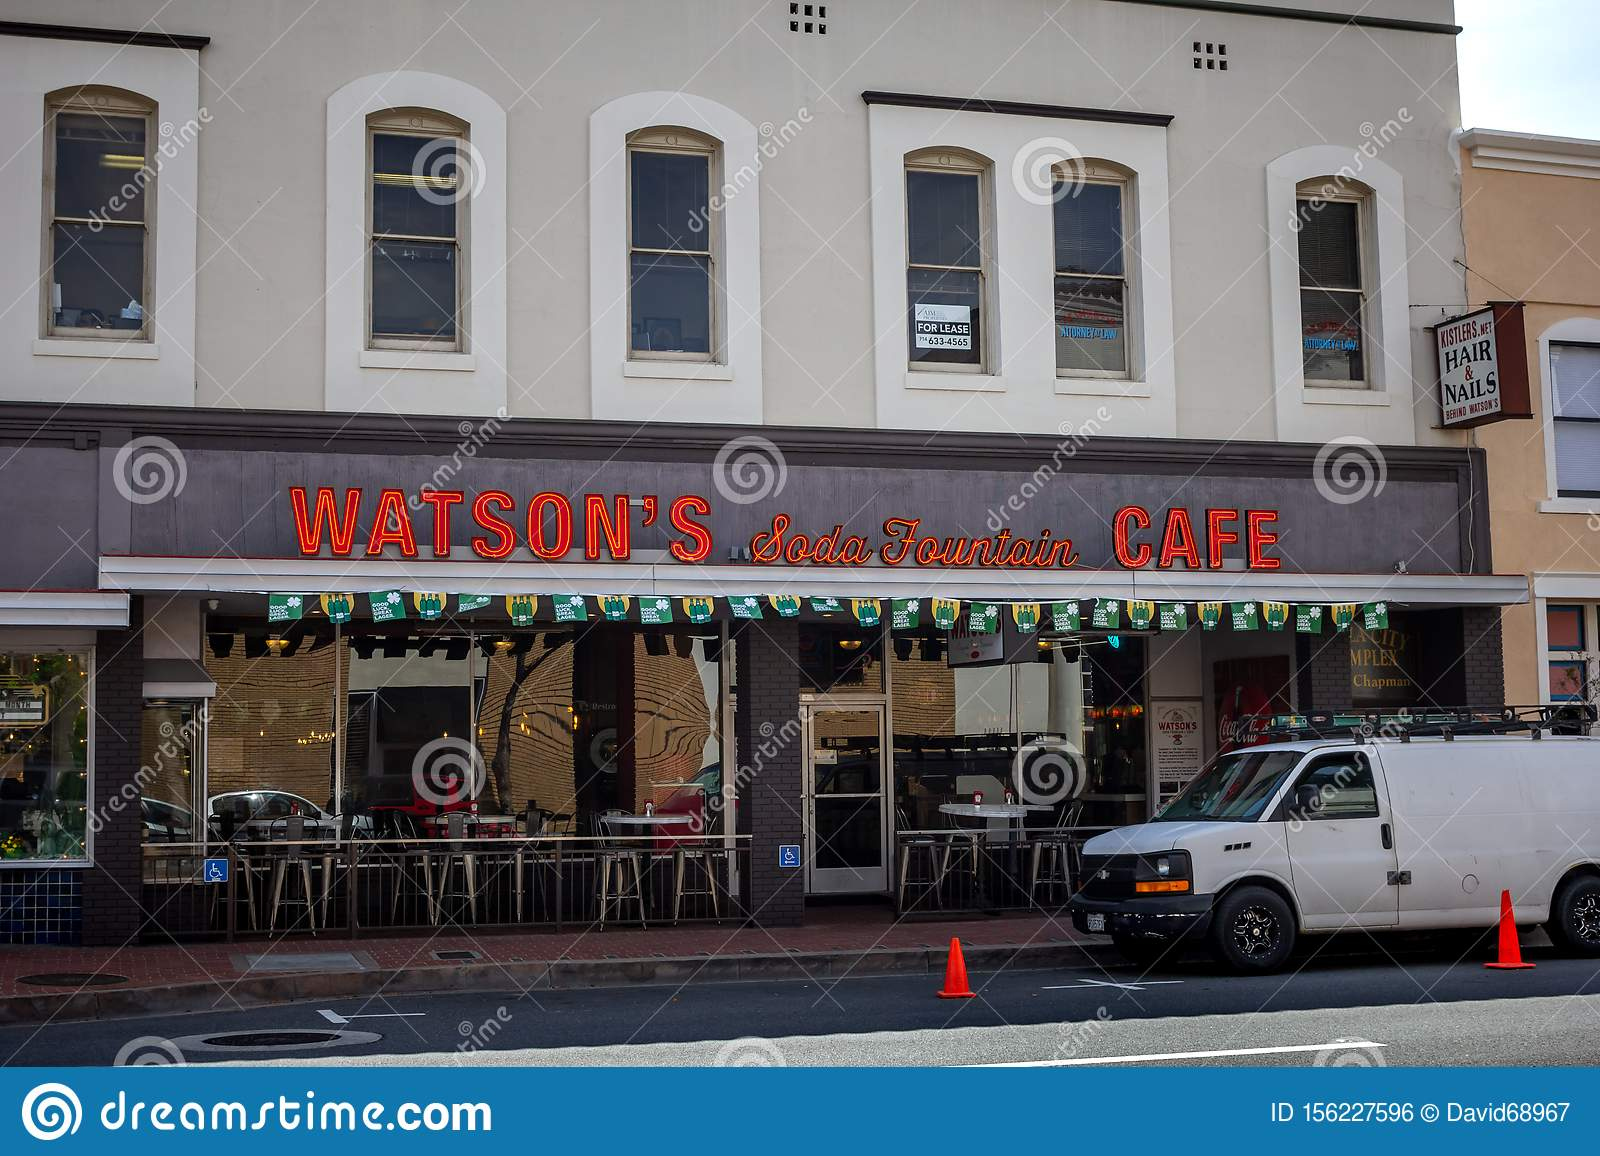 Watson S Soda Fountain Cafe Restaurant Sign Editorial Photo Image Of Business Foodie 156227596